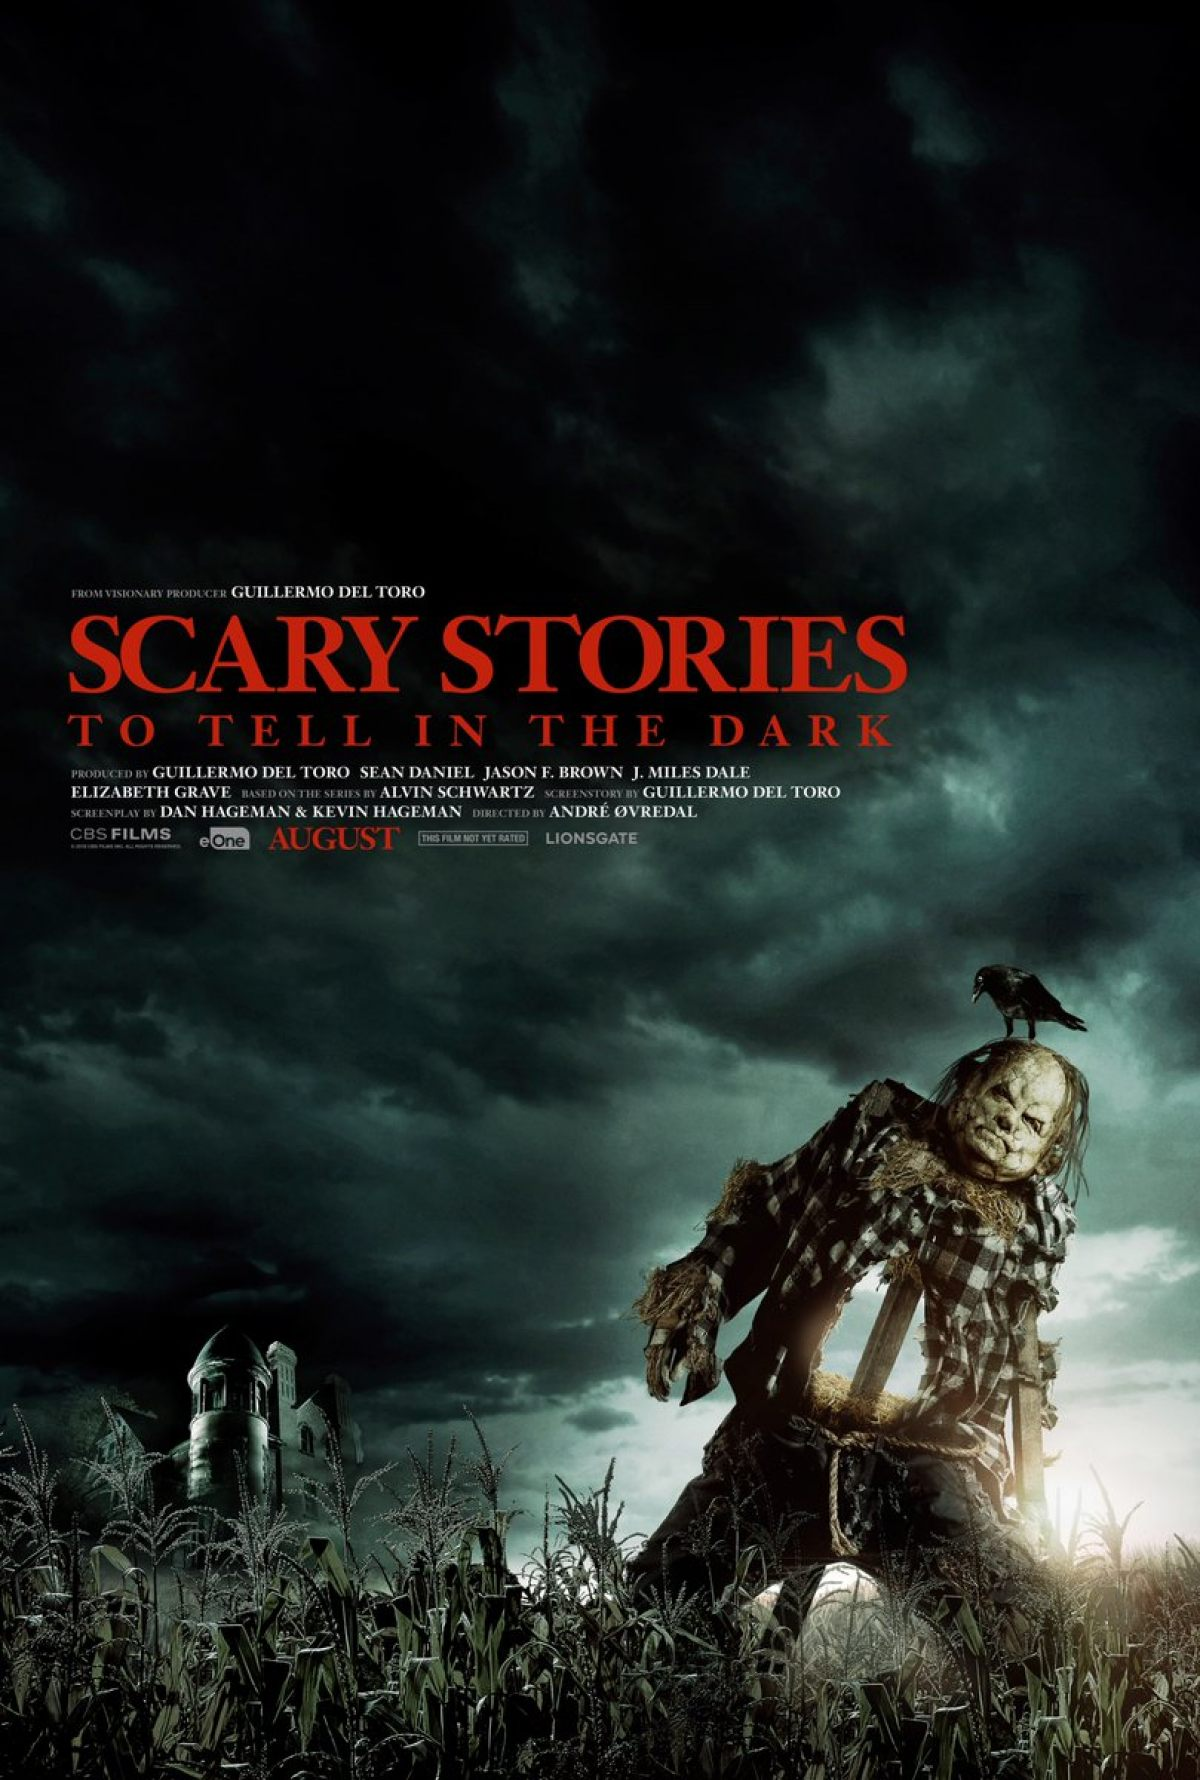 Scary-Stories-Poster-1_1200_1780_81_s.jpeg